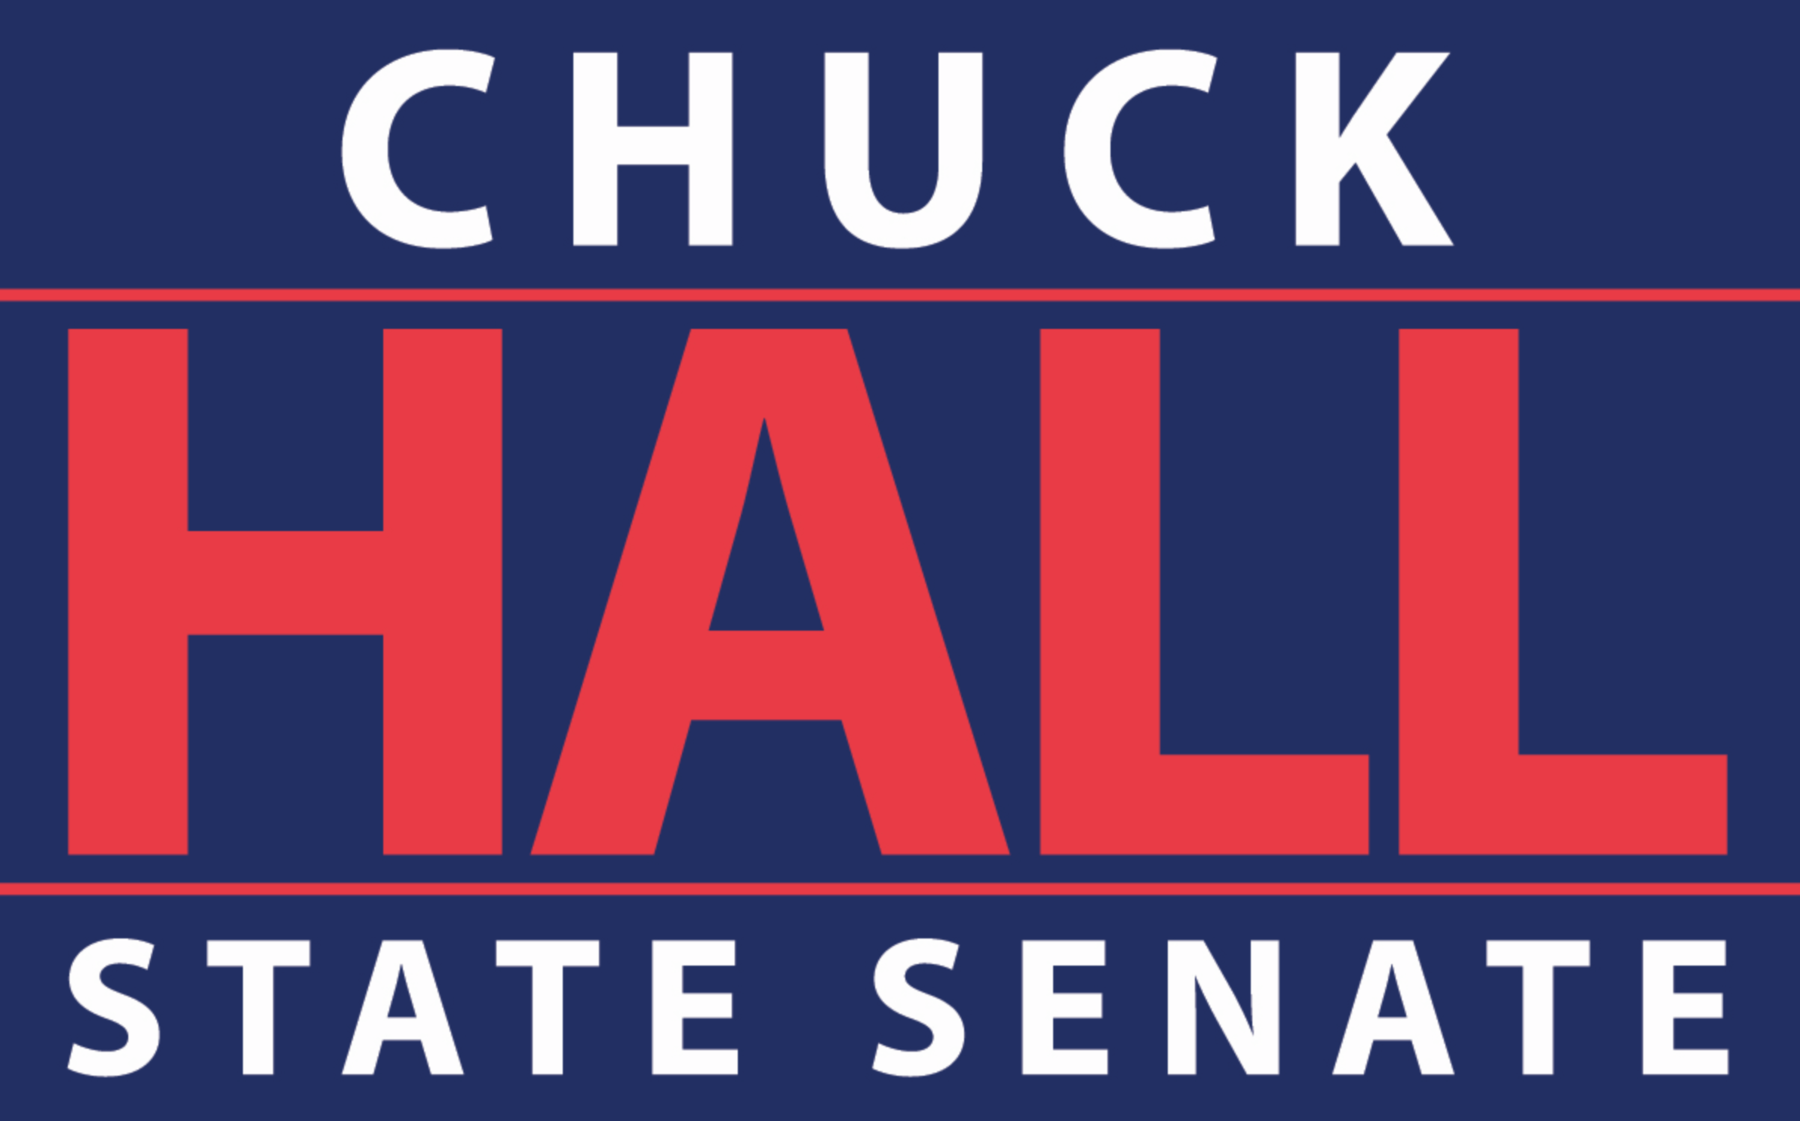 Chuck Hall for State Senate 2018: donate online